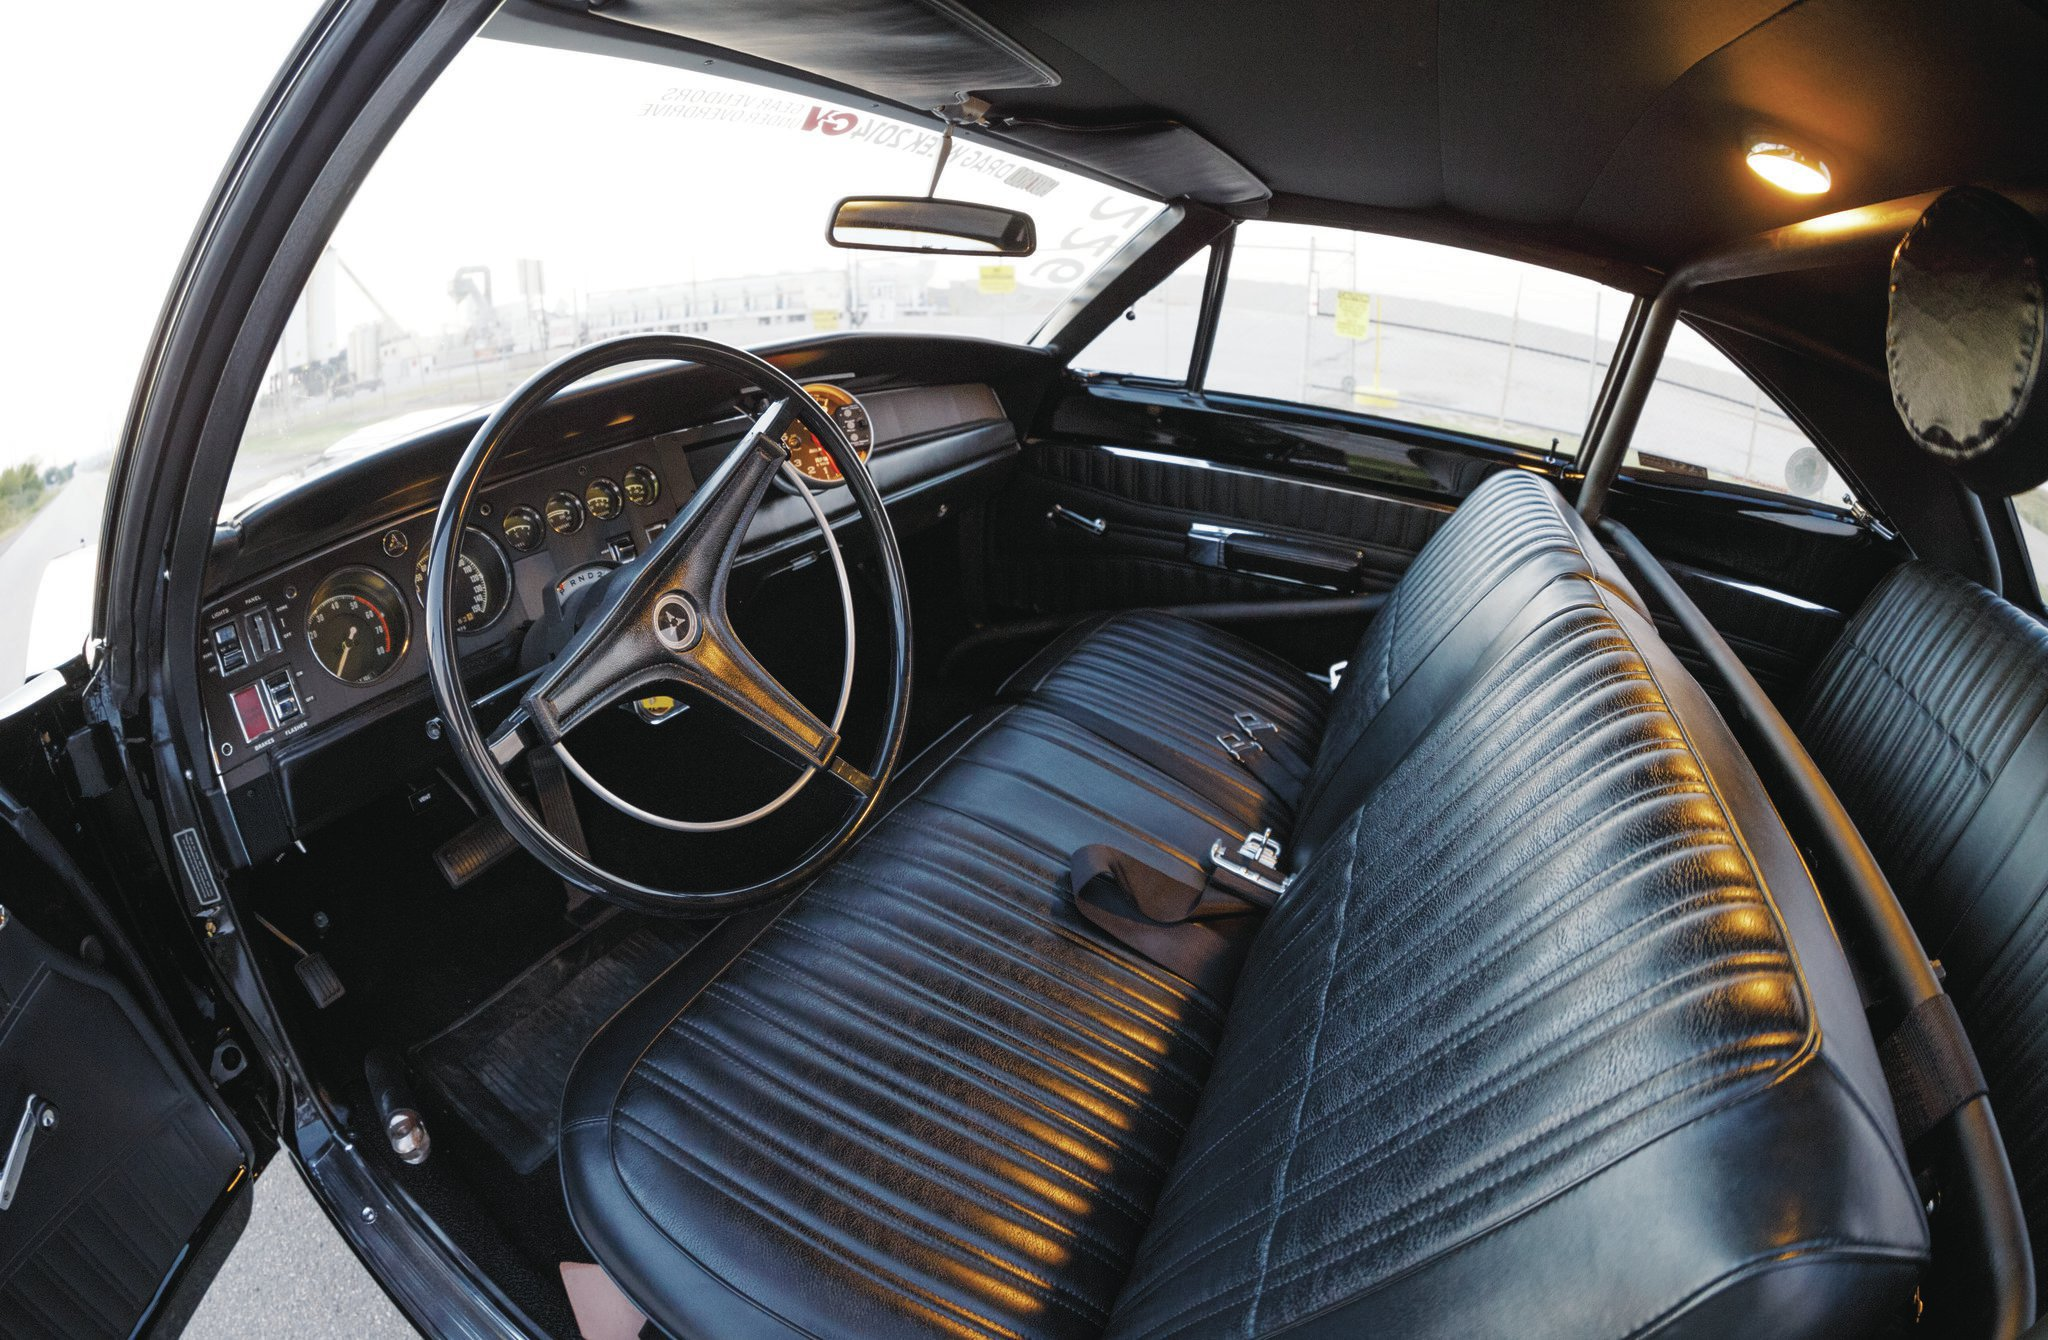 Bench seat, full gauges, stock steering wheel—you almost don't notice that rollbar.